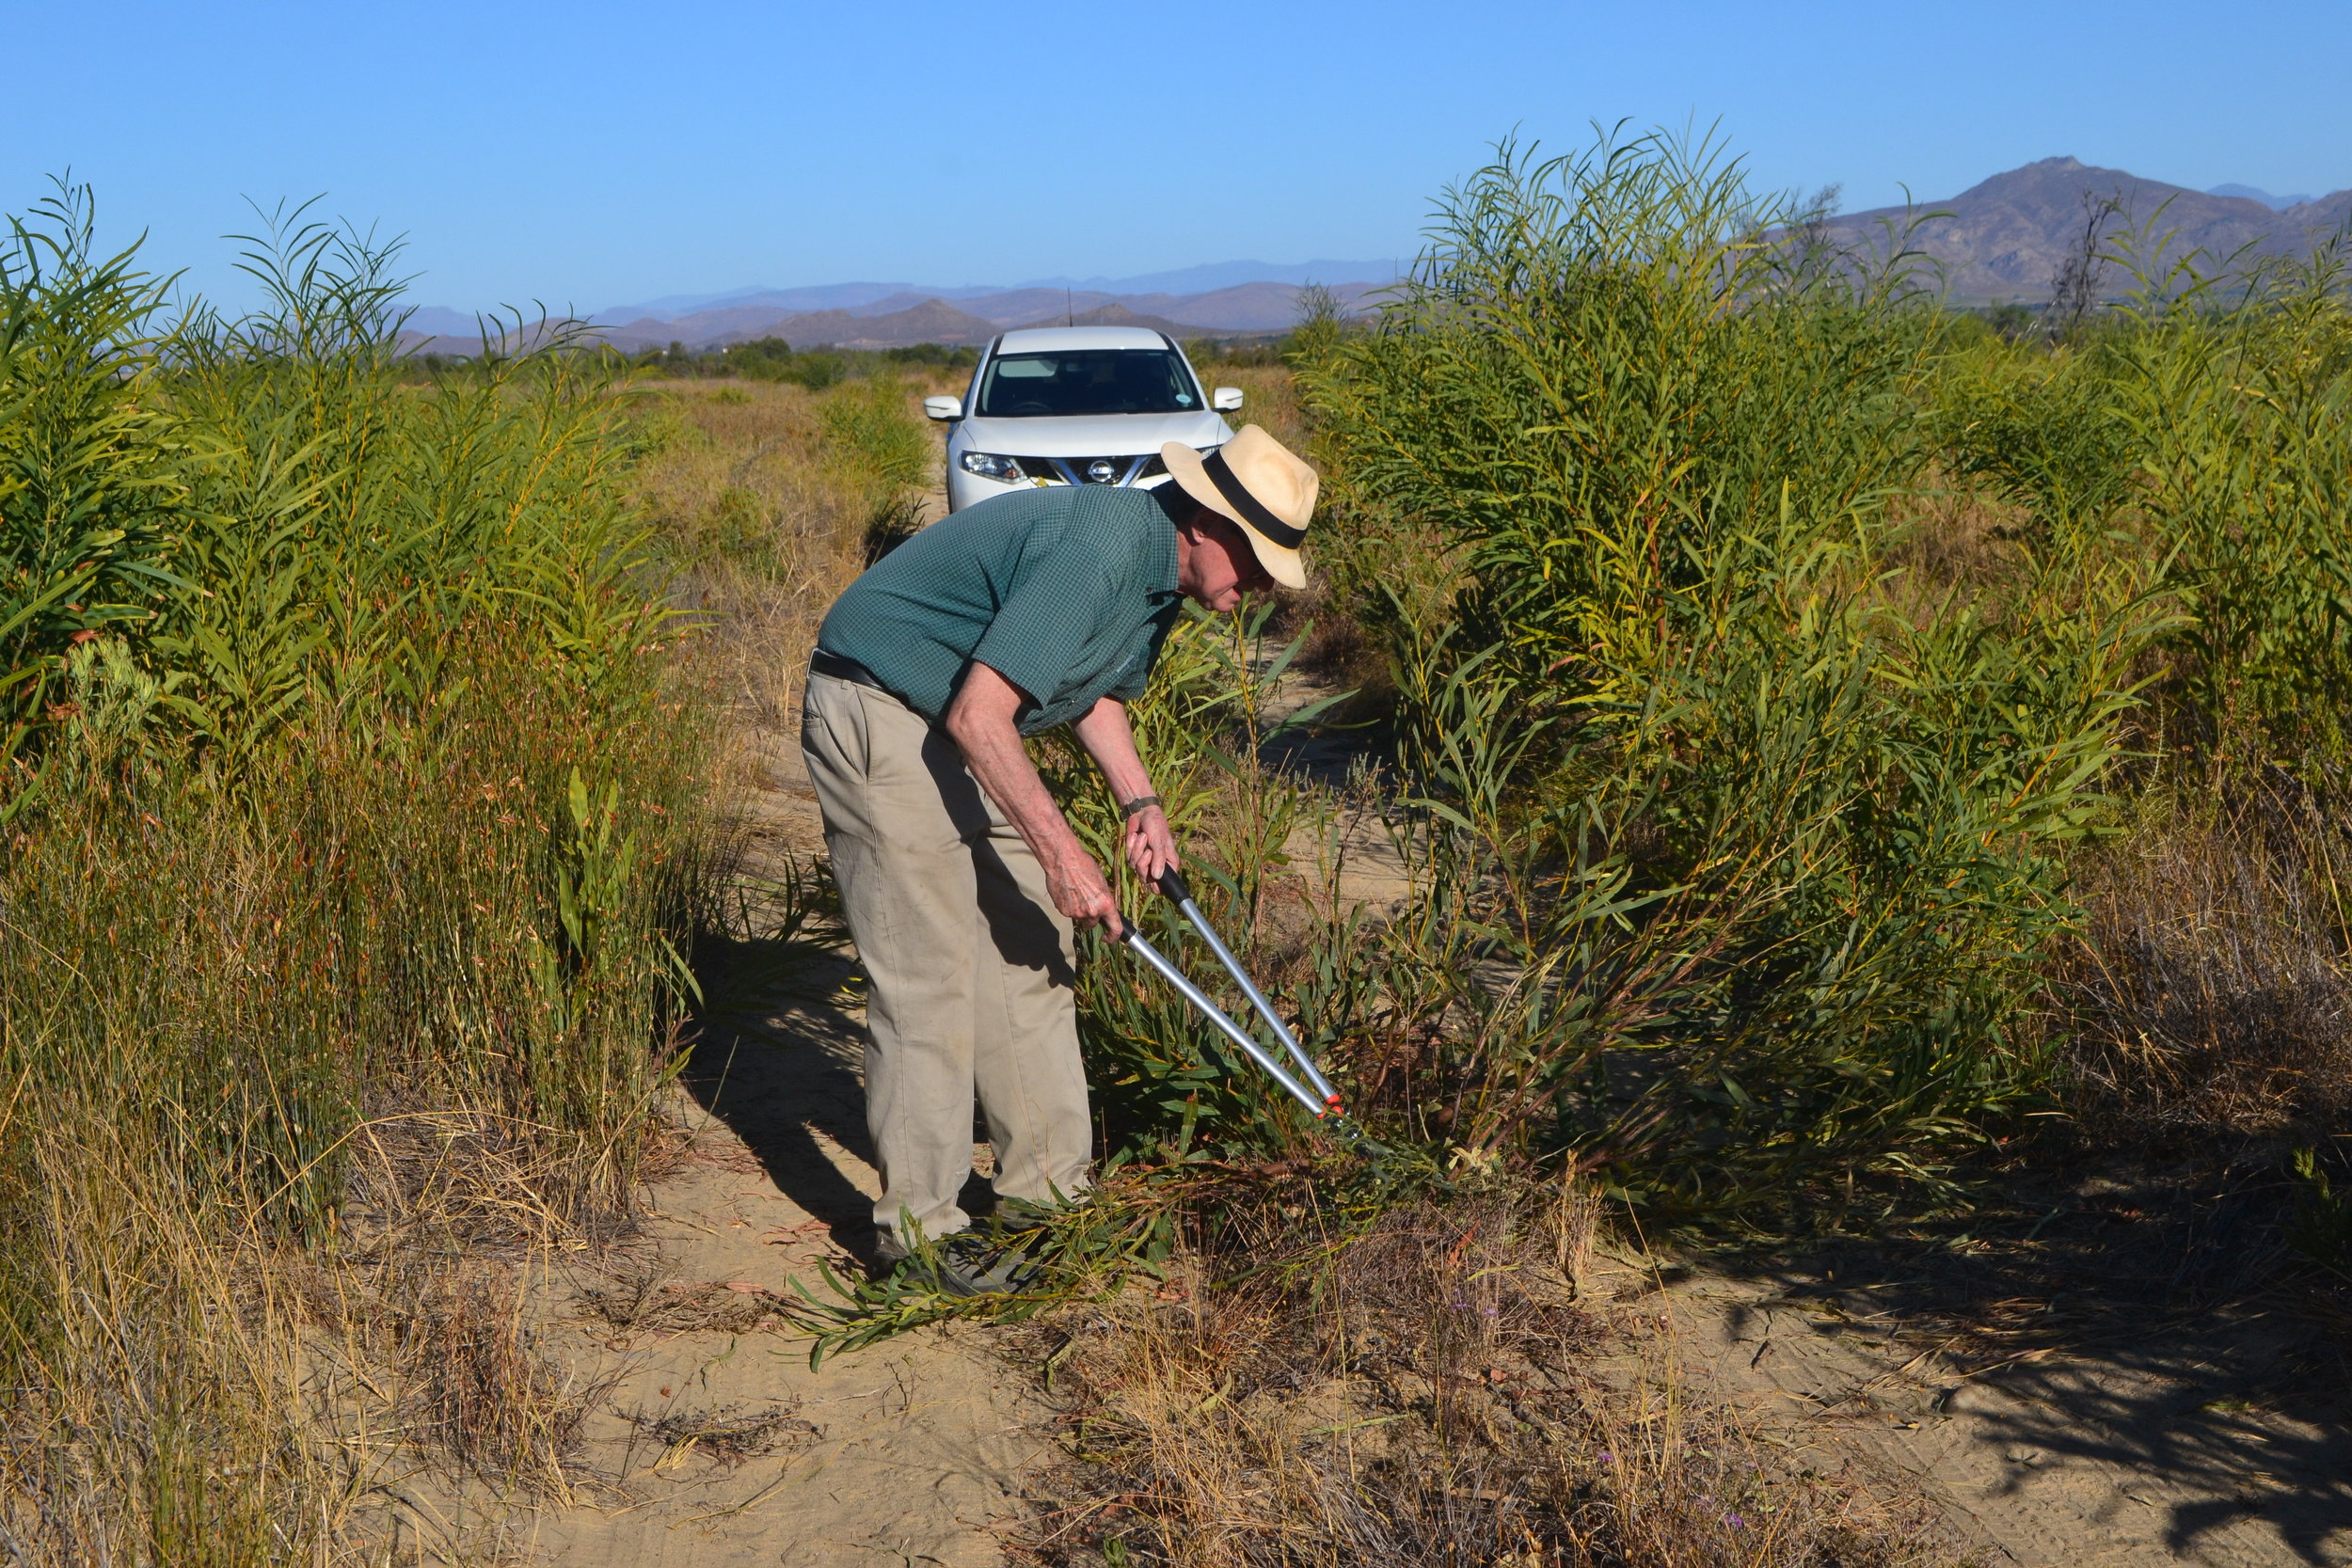 Turtle Conservancy Chief Scientist Ross Kiester in an area full of invading Australian Acacia and fighting back with cutters!